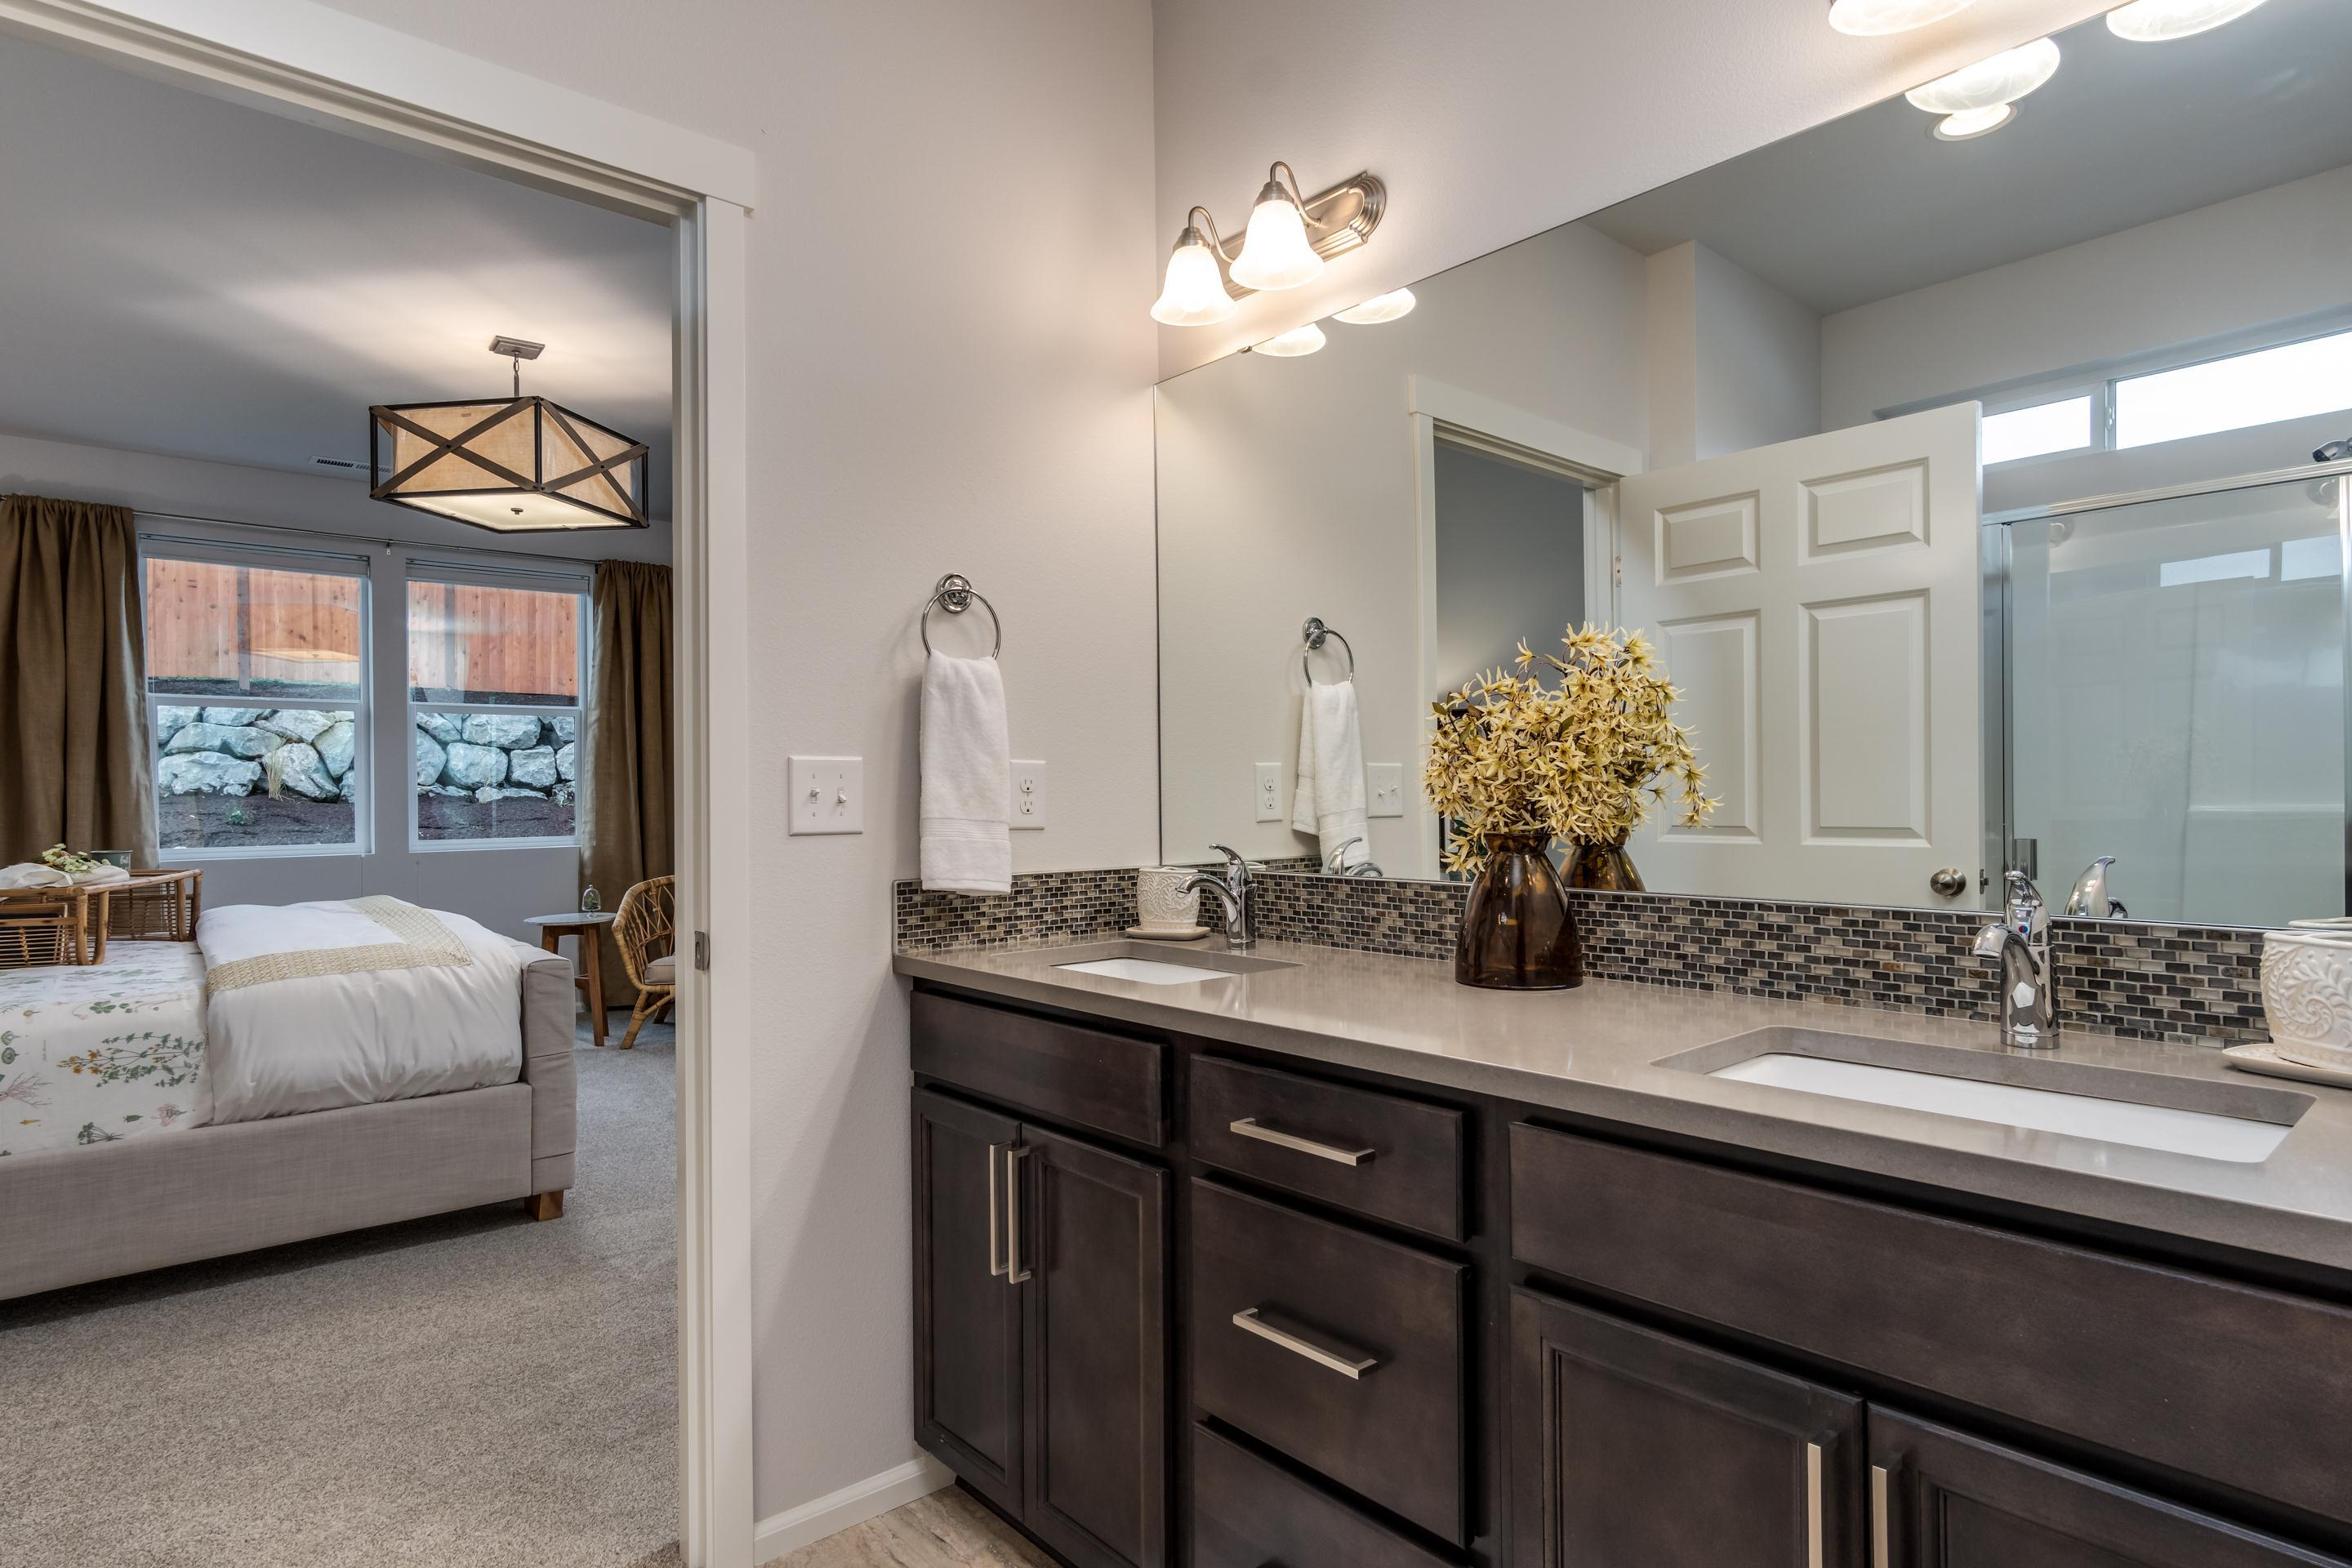 Bathroom featured in the CC Sinclair By Landed Gentry Homes in Bellingham, WA